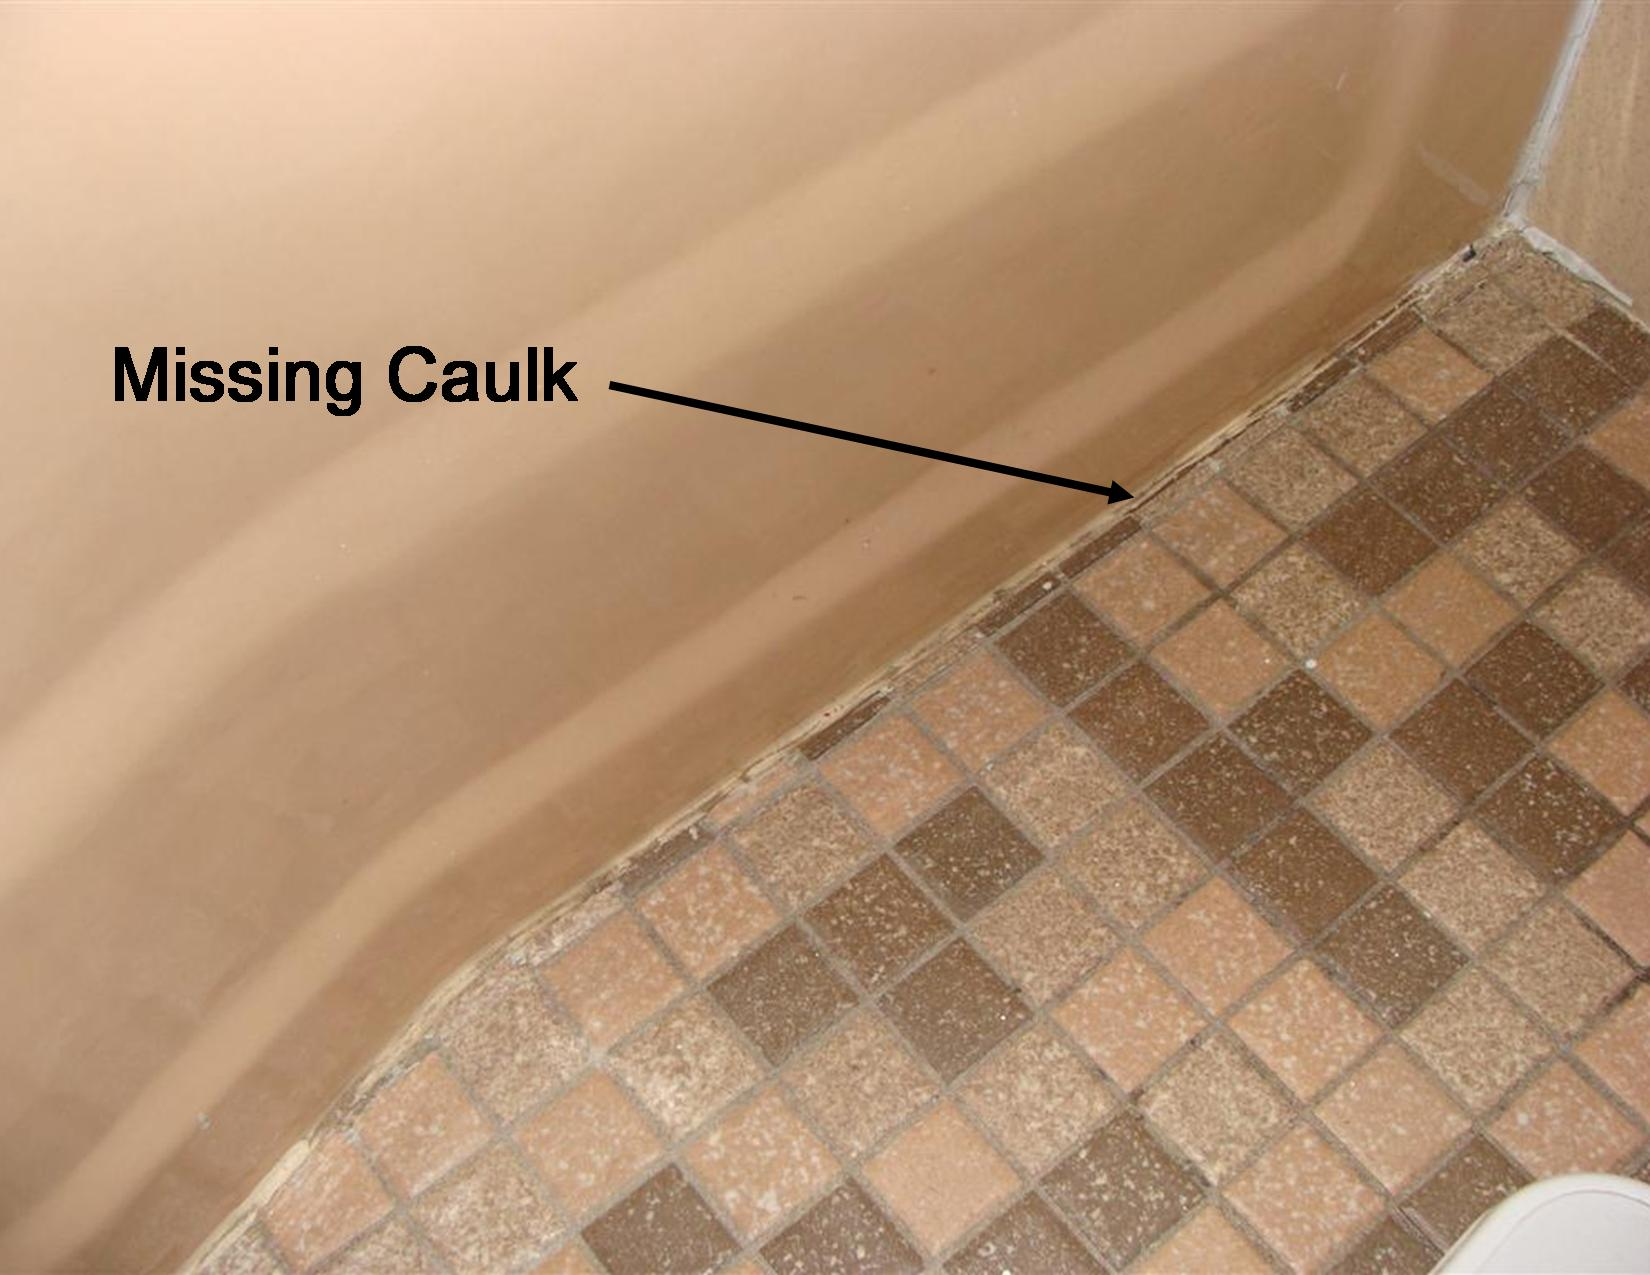 Shower Floor Tiles Which Why And How: Finding Shower Leaks